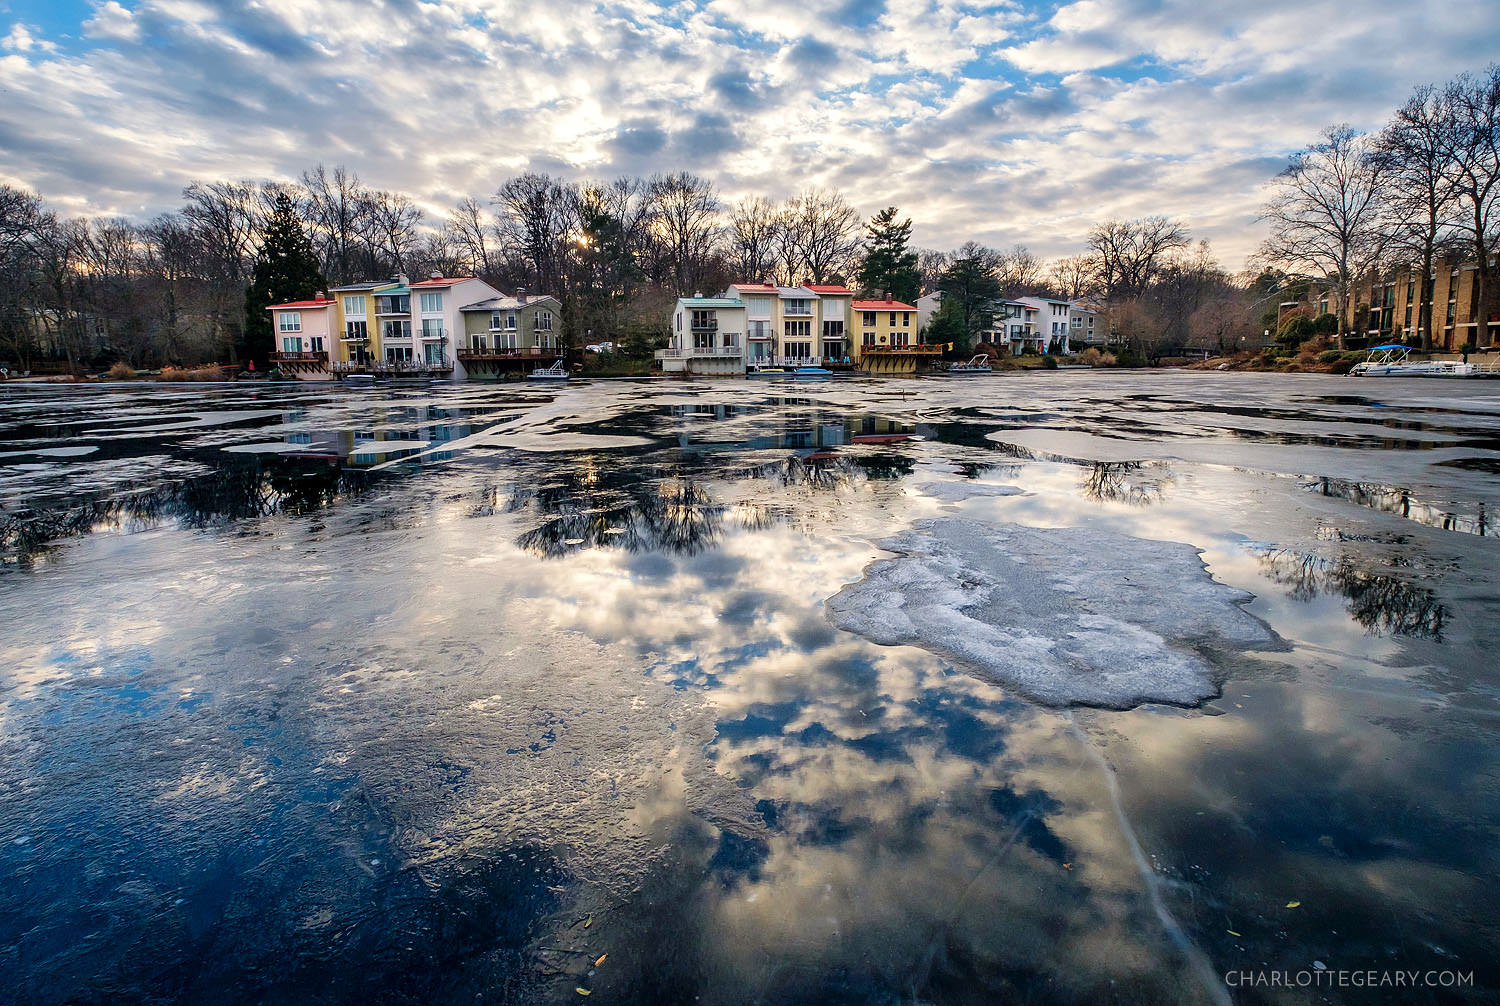 Melting ice on Lake Anne in Reston, Virginia